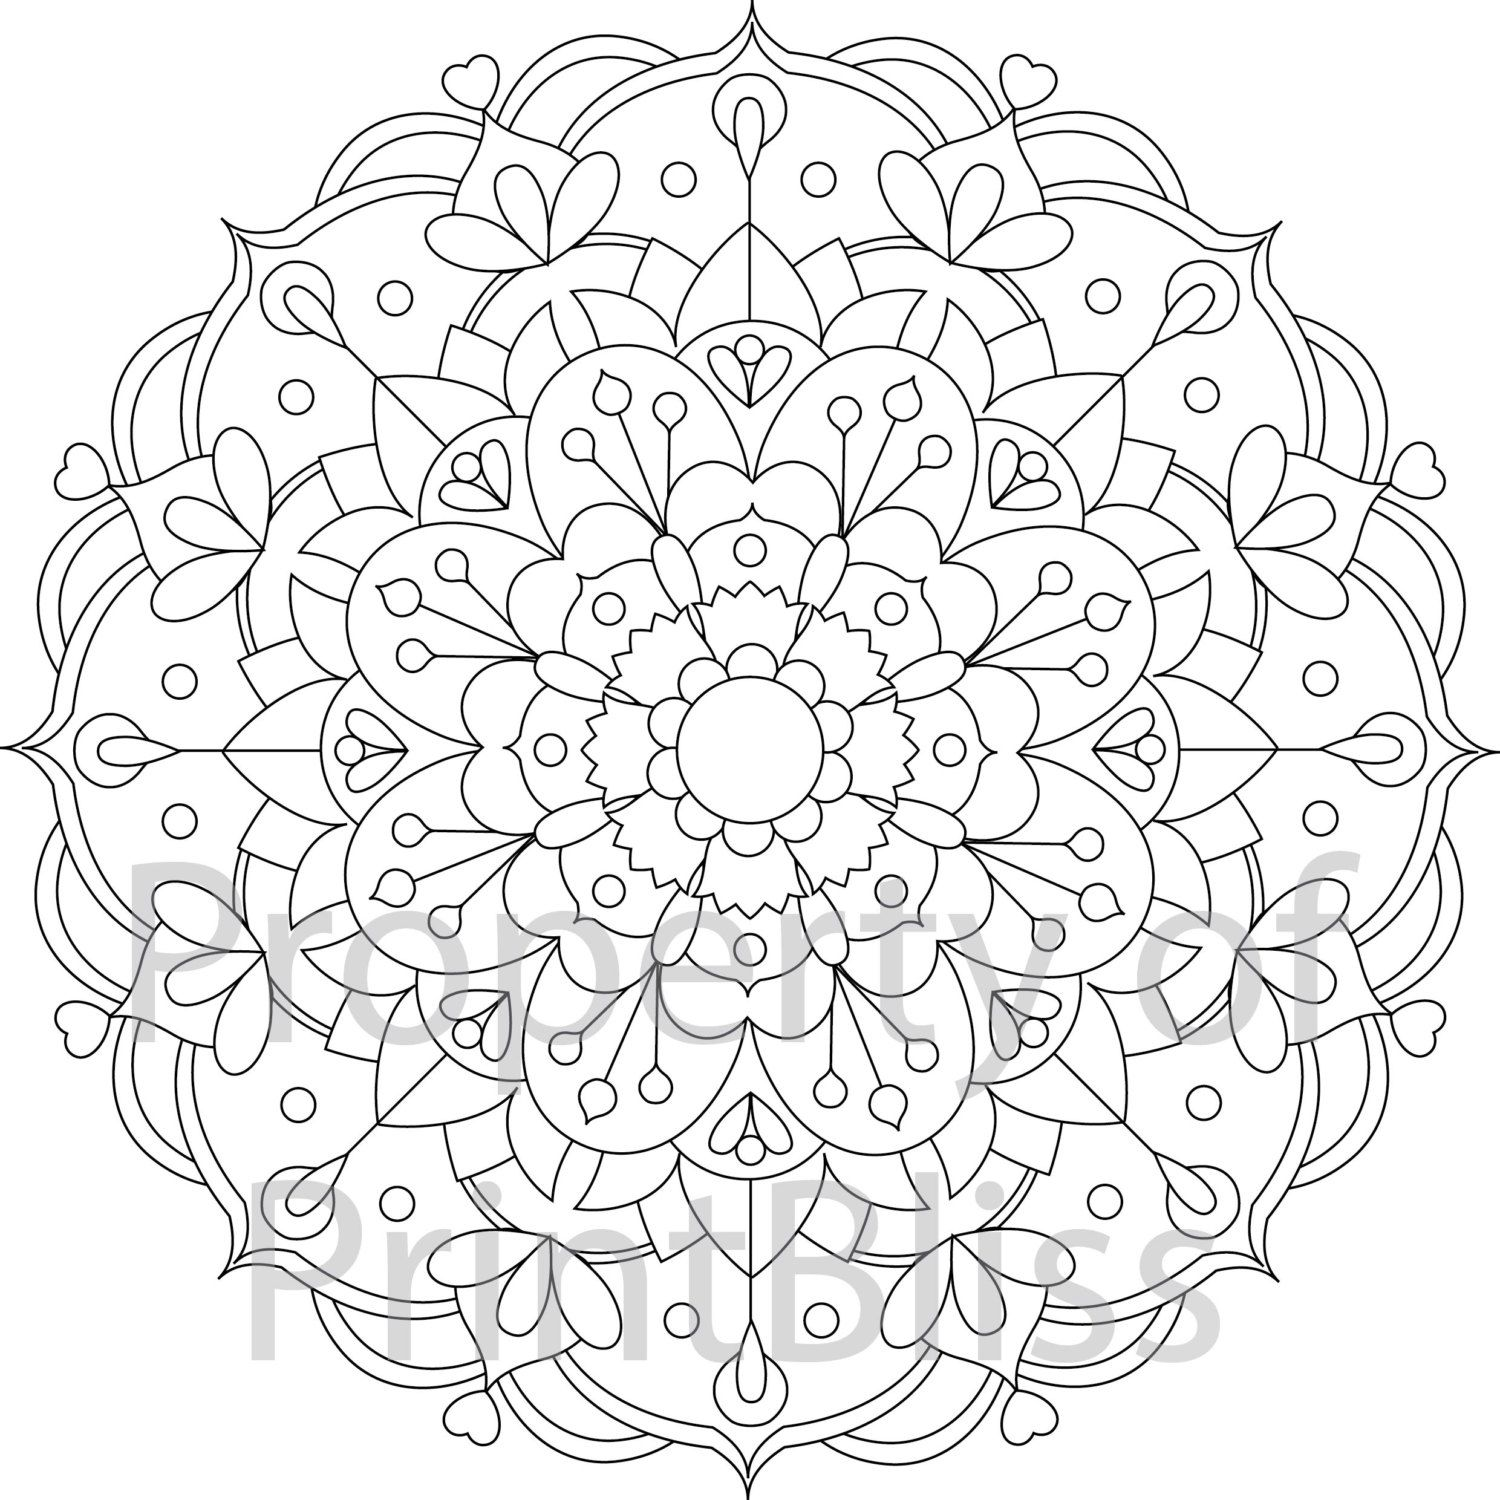 23 flower mandala printable coloring page by printbliss on etsy art my work mandala. Black Bedroom Furniture Sets. Home Design Ideas